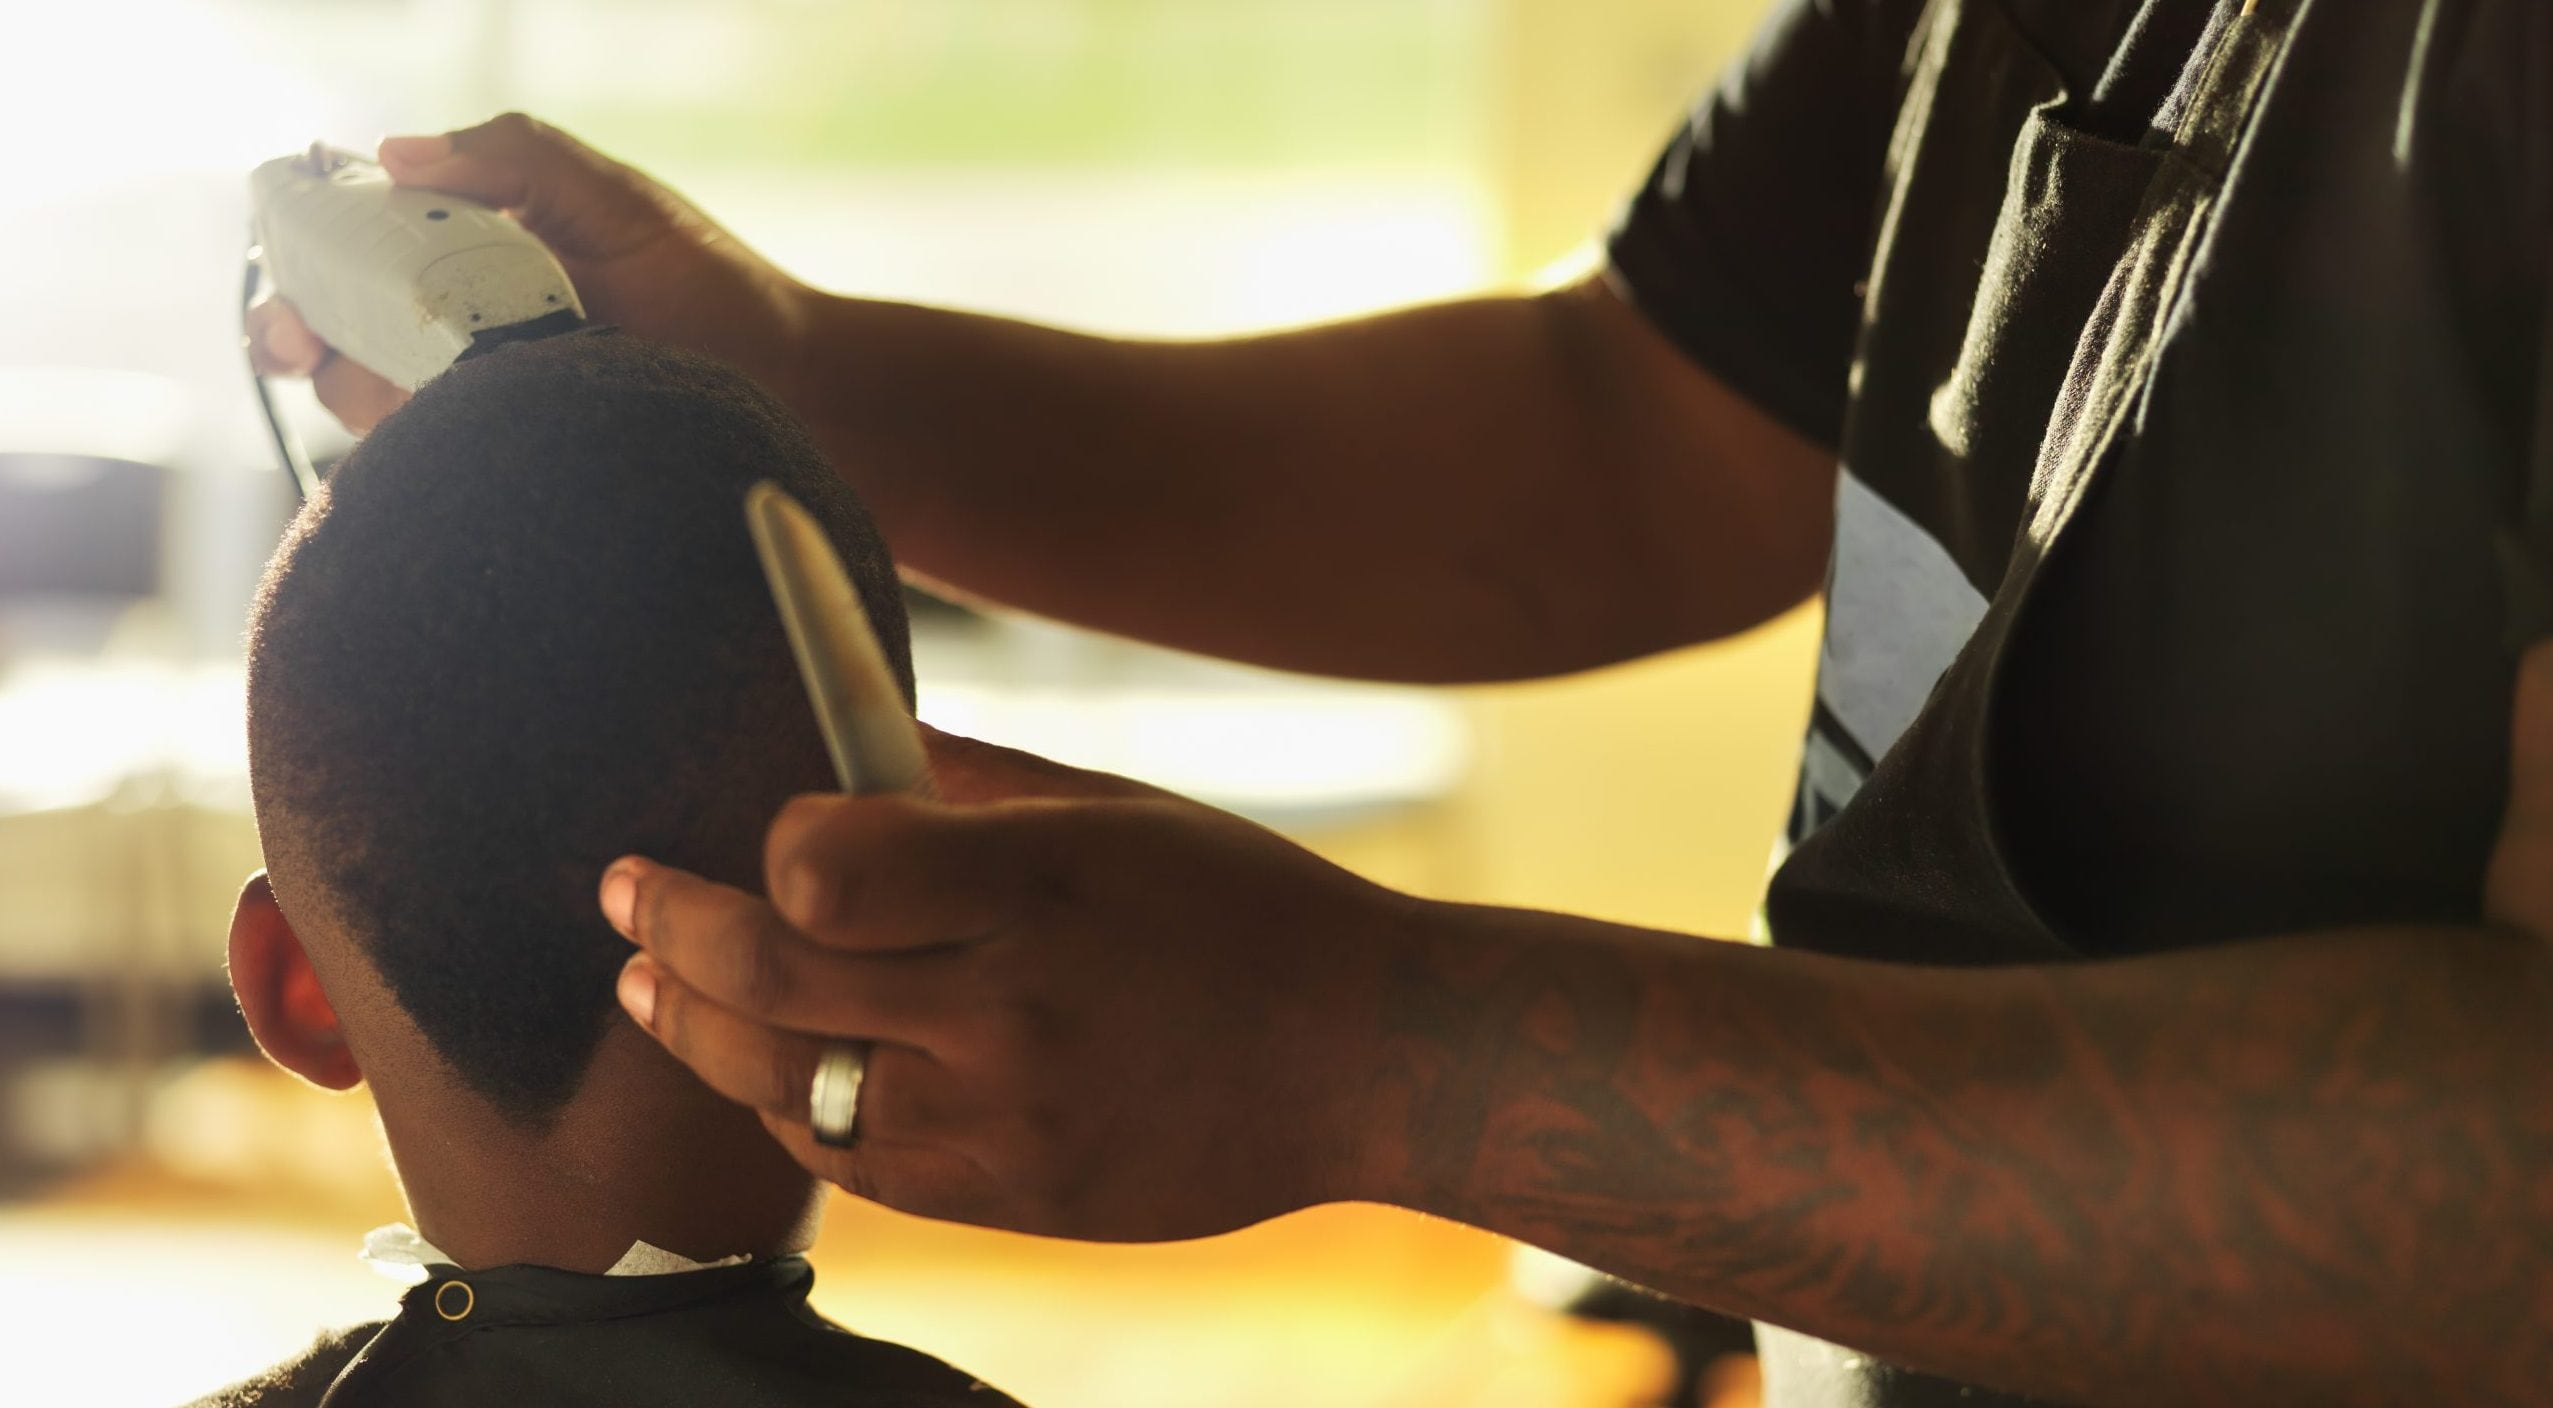 Principal cuts hair of middle schooler embarrassed about haircut – TheGrio